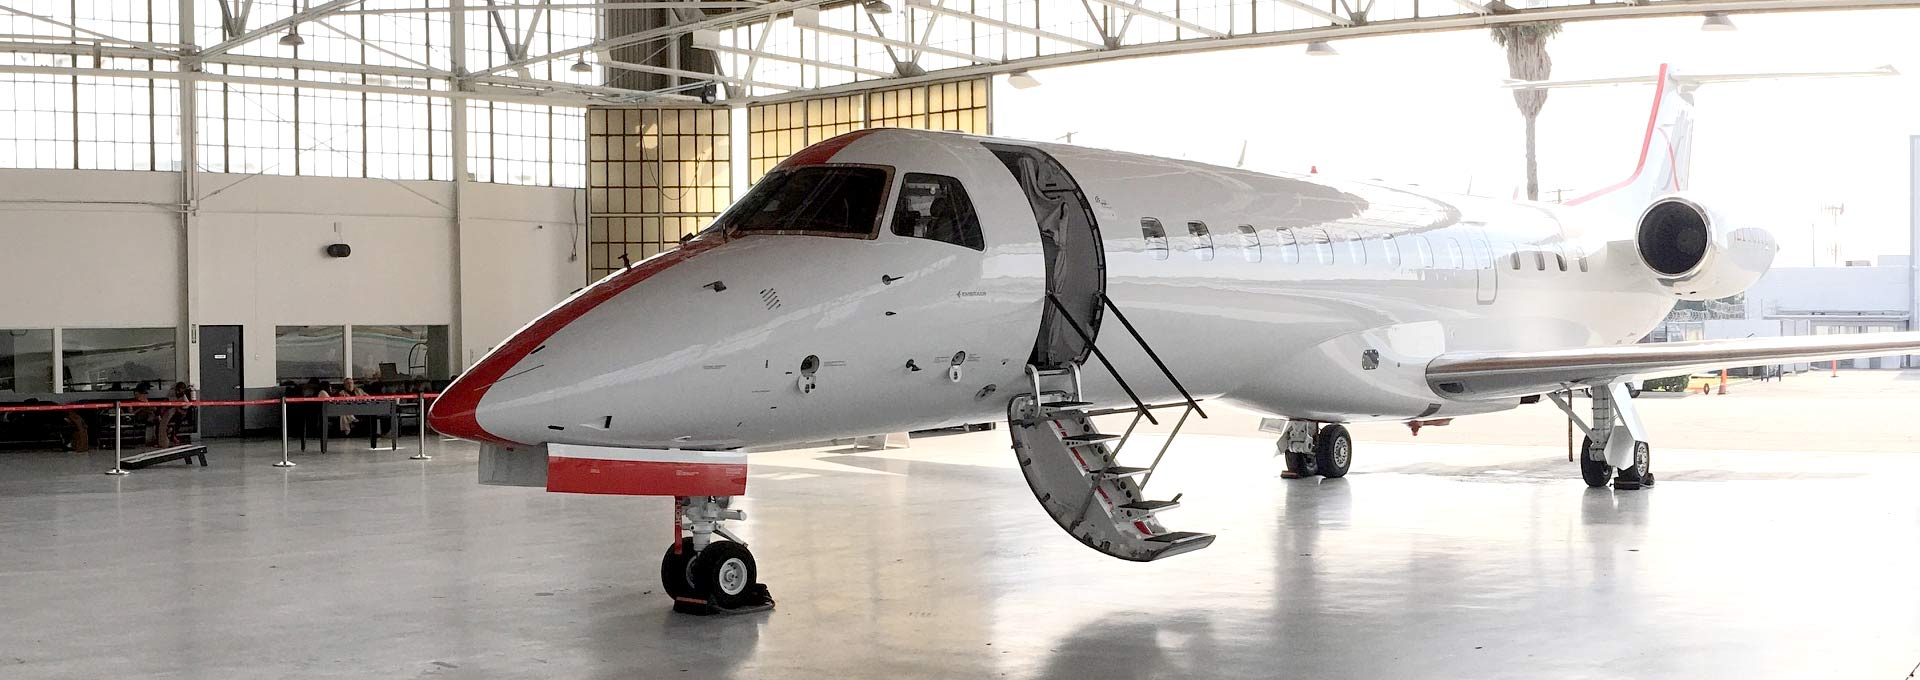 Jetsuite review. A private Jet is the only way to fly